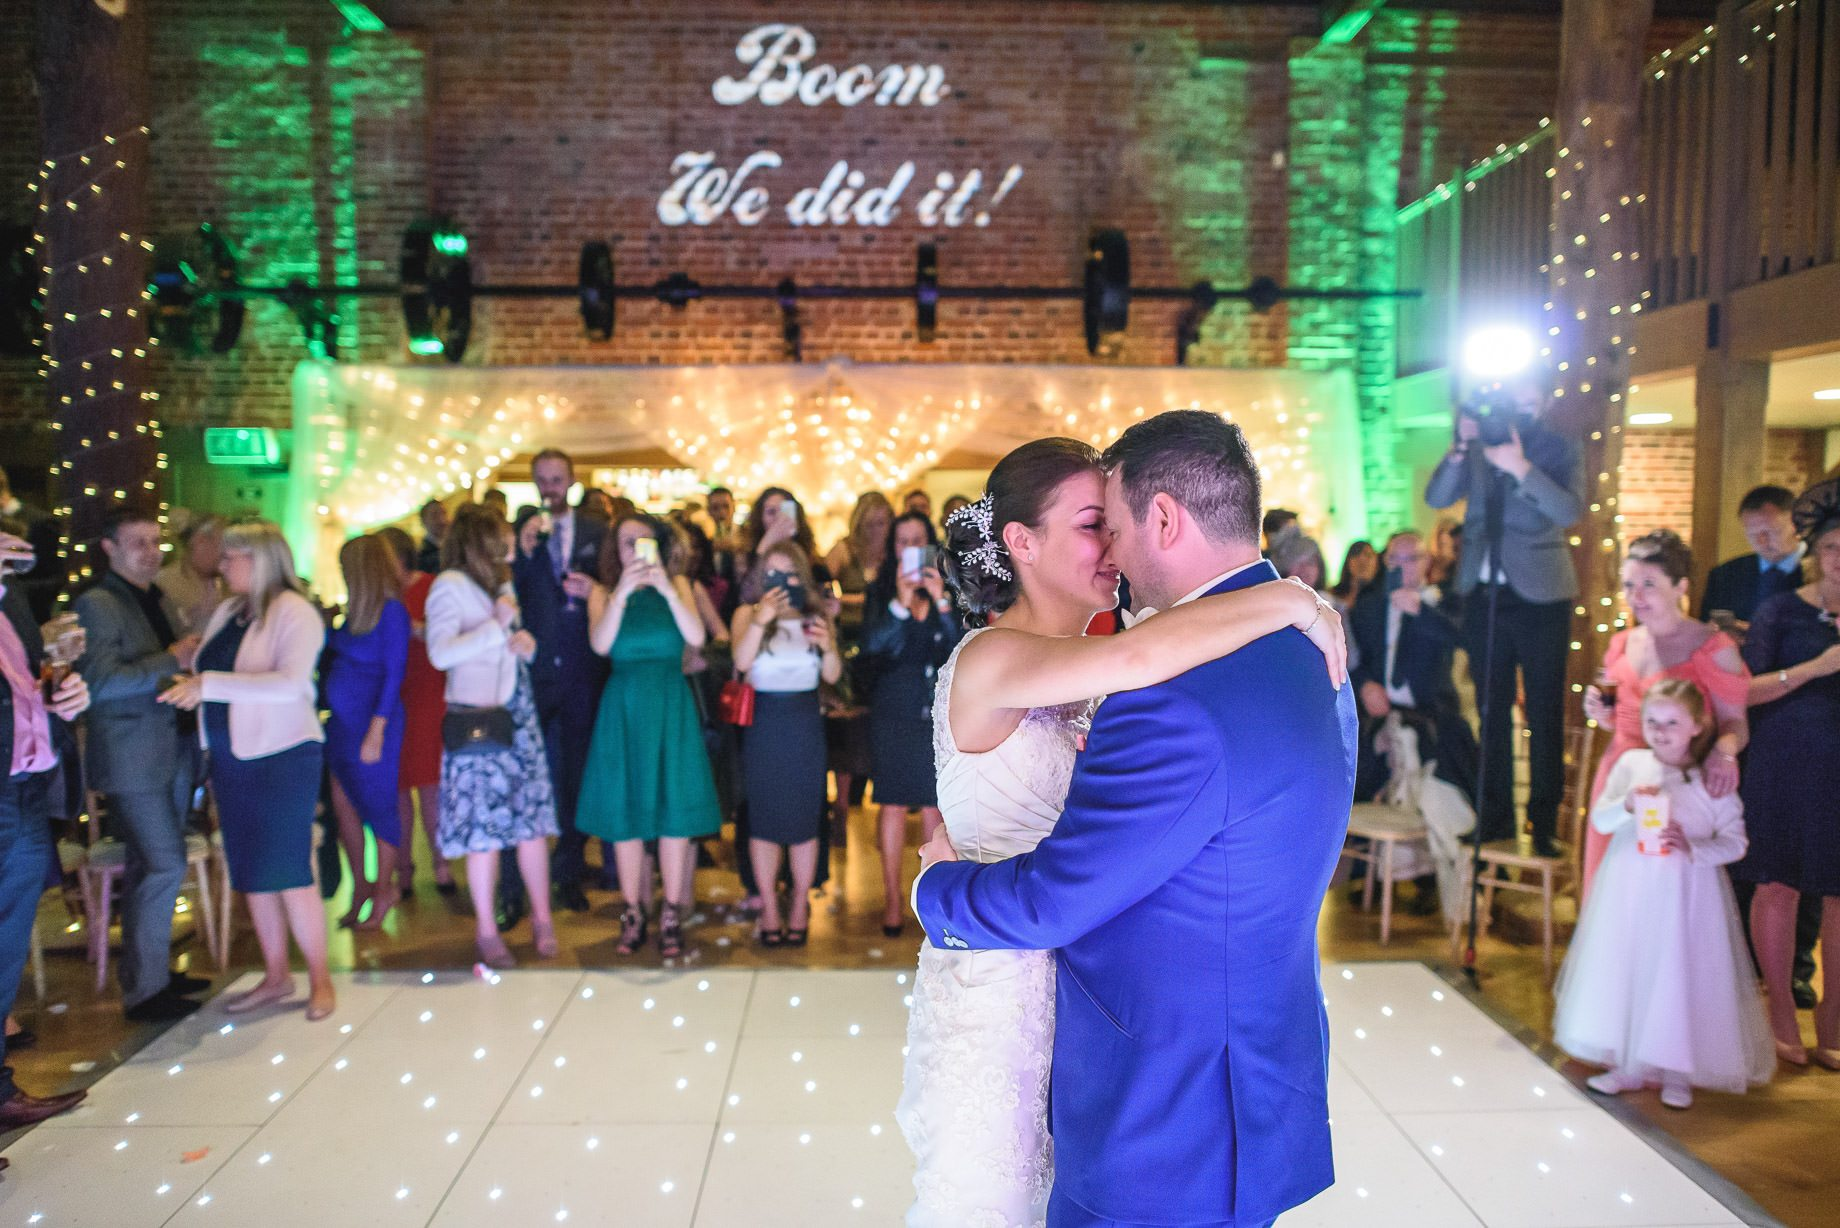 Best wedding photography by Guy Collier - Sheri and Chris (119 of 121)